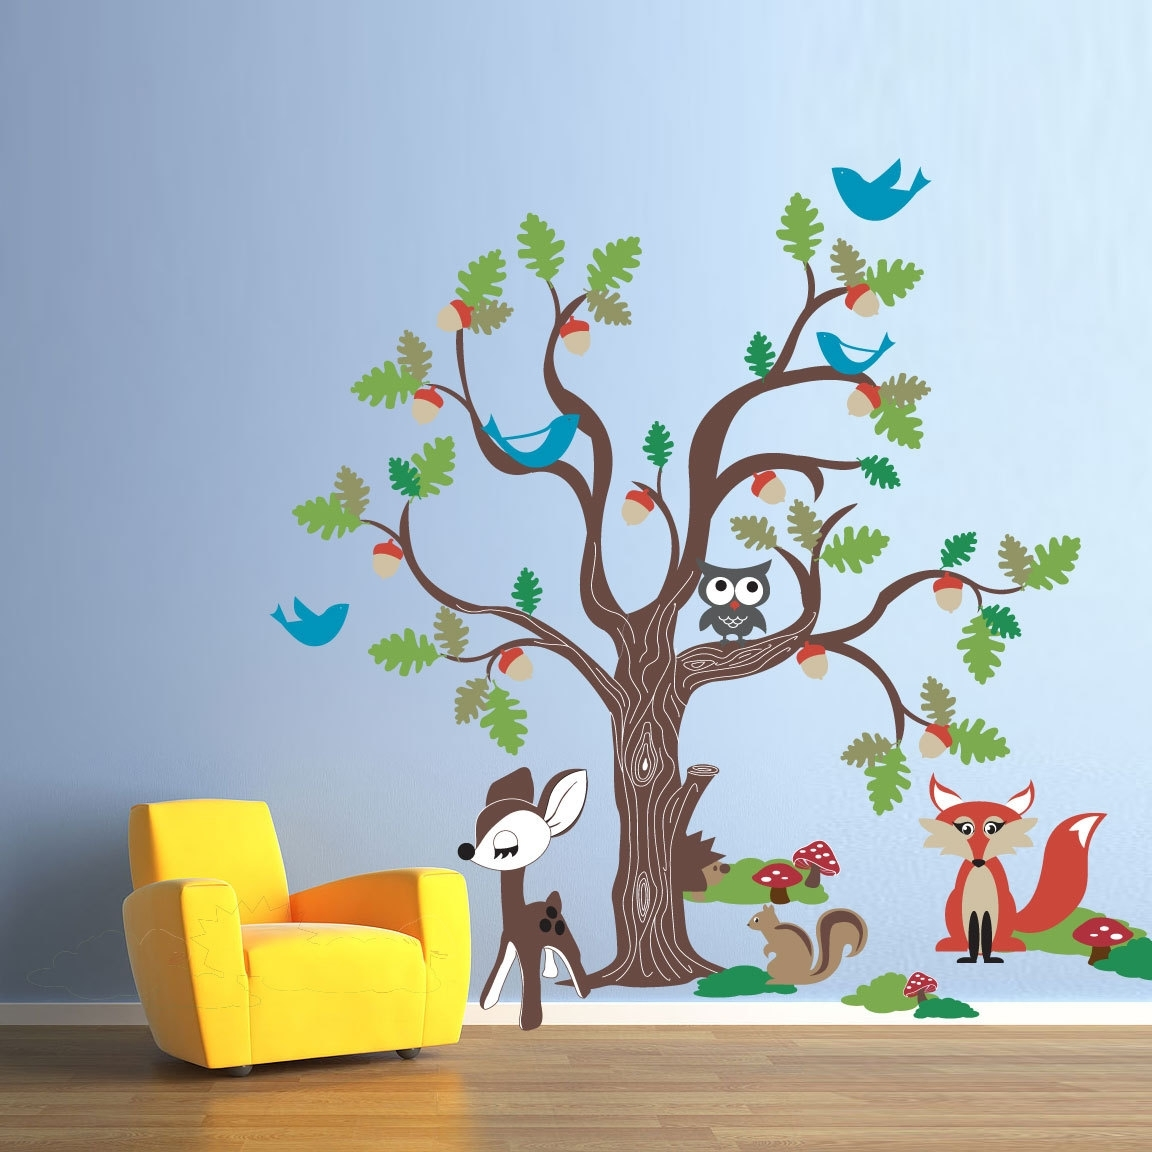 Newest Oak Tree Wall Art Within Vinyl Wall Decal Sticker Art – Oak Tree And Woodland Animals (View 9 of 15)